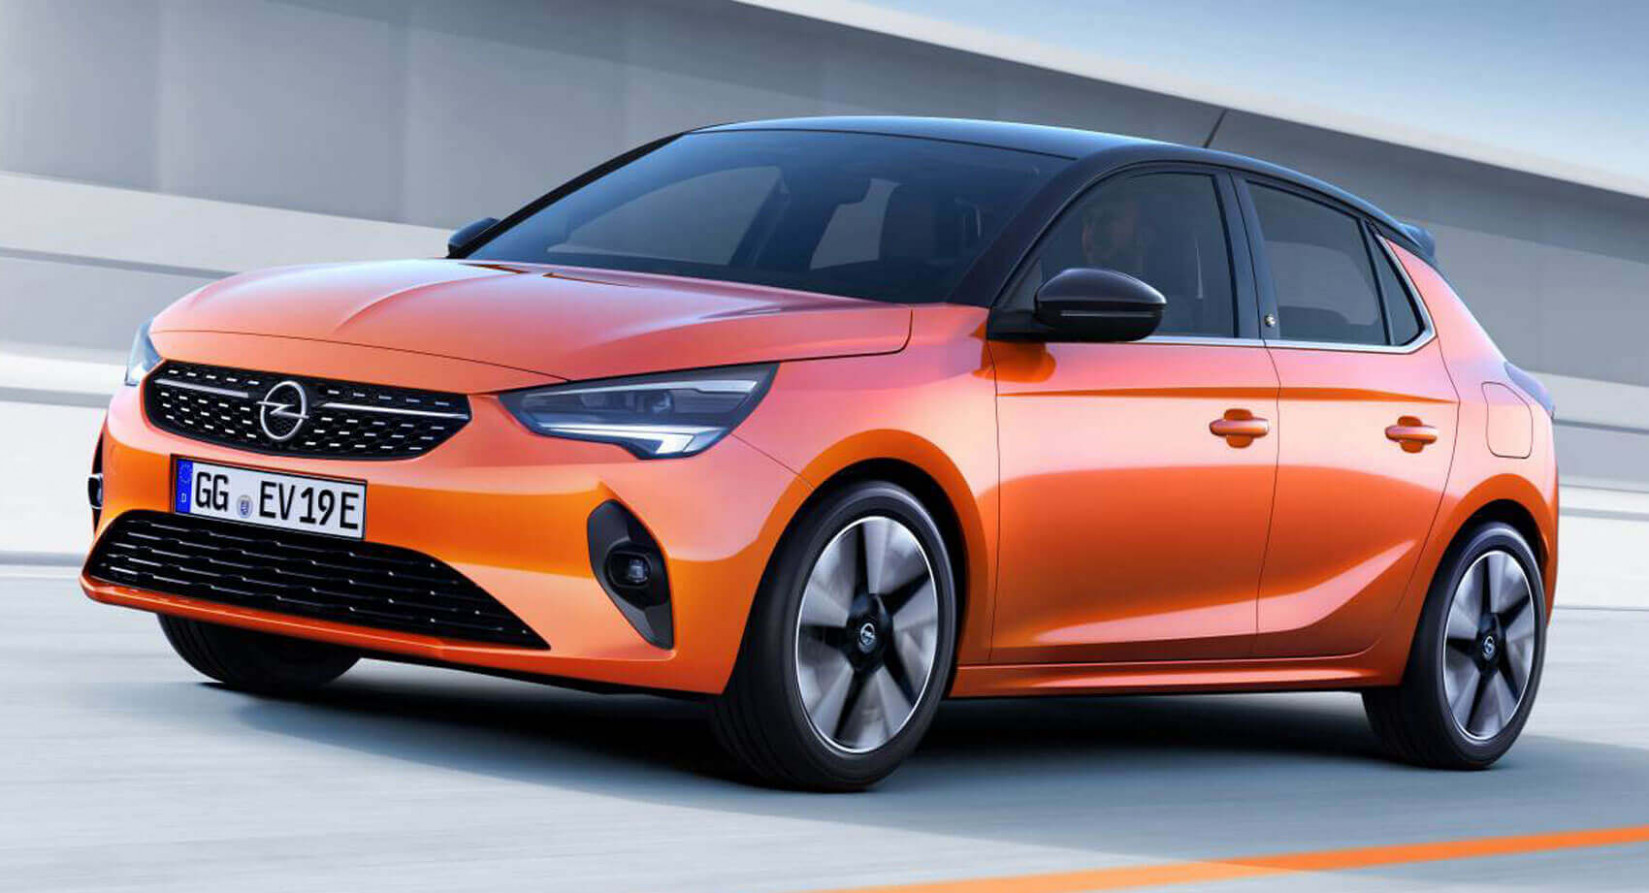 First Drive Opel Will Launch Full-Electric Corsa In 2022